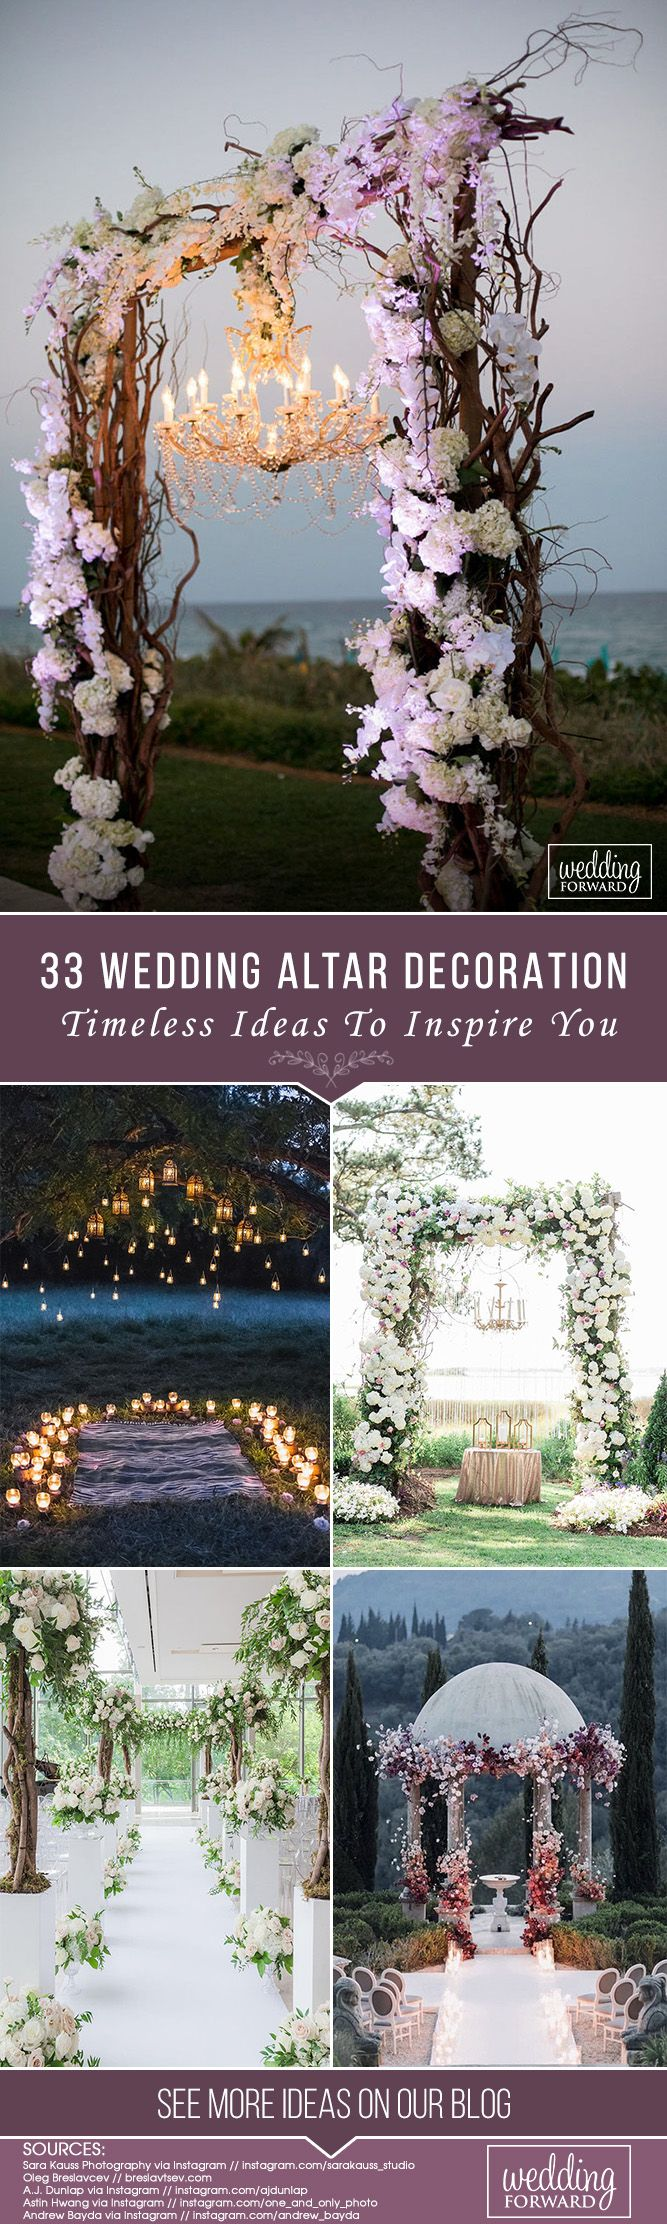 33 Timeless Wedding Altar Decoration Ideas ❤ We've rounded up some of the most original wedding altar decoration ideas in different styles. See our gallery for more inspiration! See more: http://www.weddingforward.com/wedding-altar-decoration/ #wedding #decor #bridaldecorations #weddingdecorations #weddingceremony #weddingaltardecoration